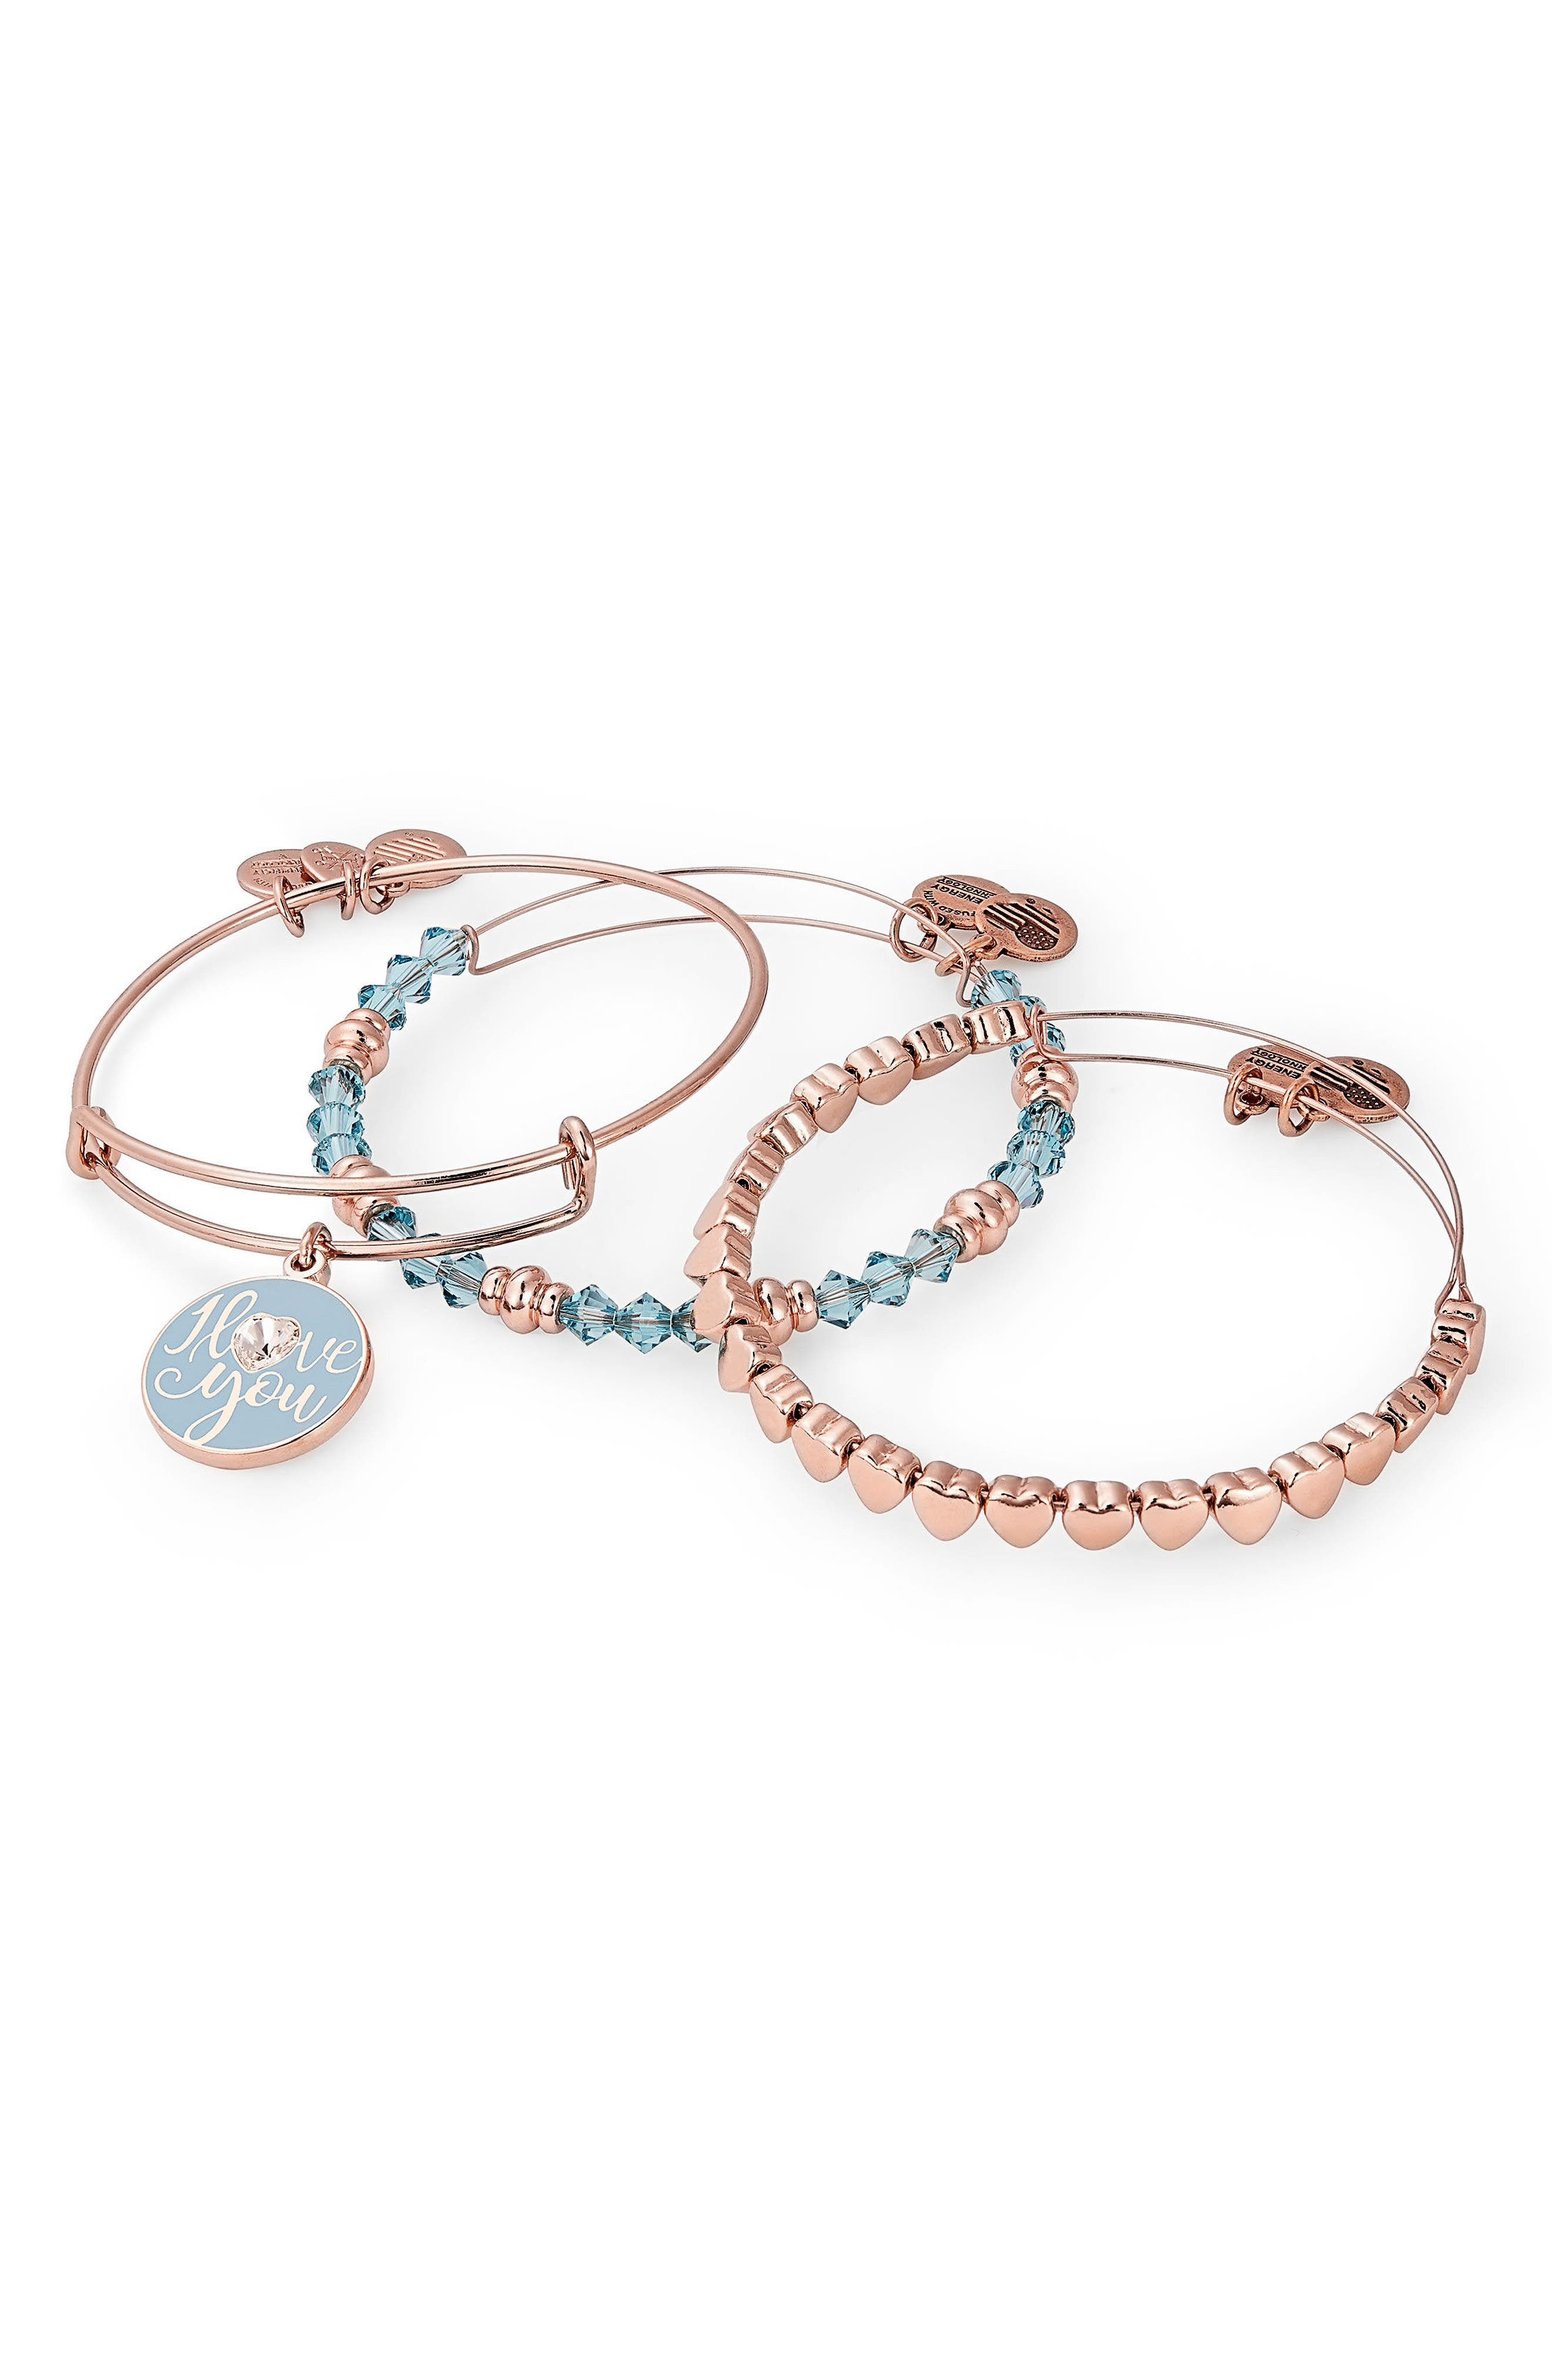 I Love You Set of 3 Adjustable Wire Bangles,                             Main thumbnail 1, color,                             Rose Gold